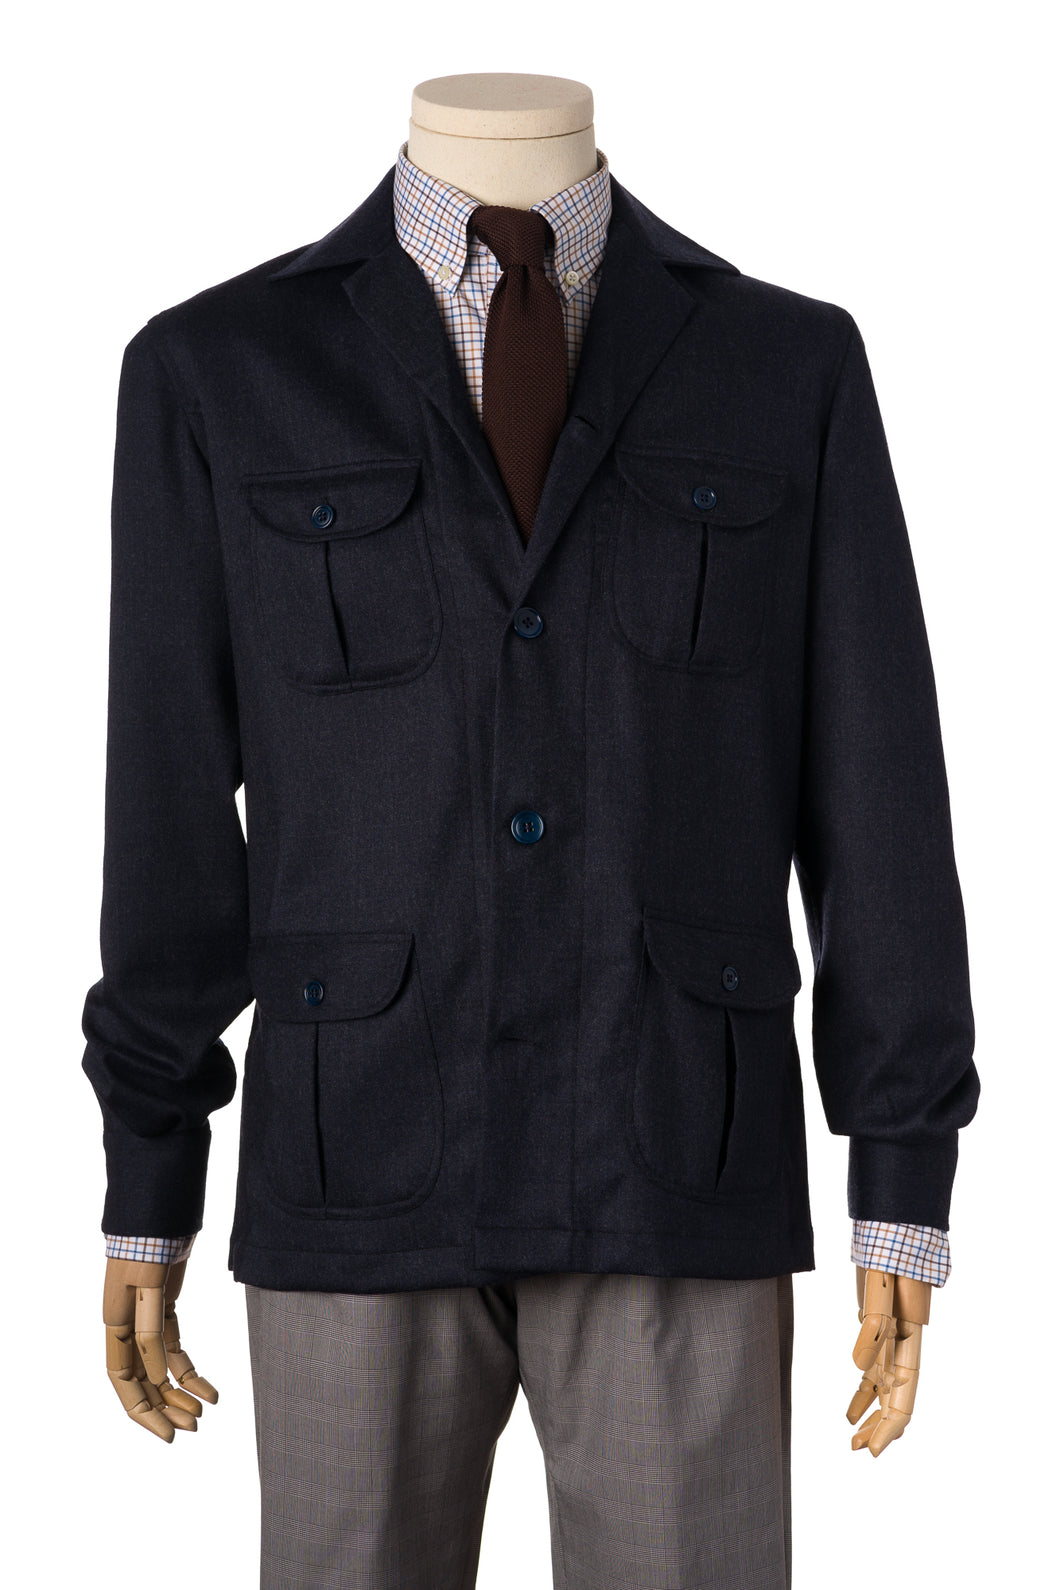 Christakis Navy Blue Wool Safari Overshirt with shirt and tie